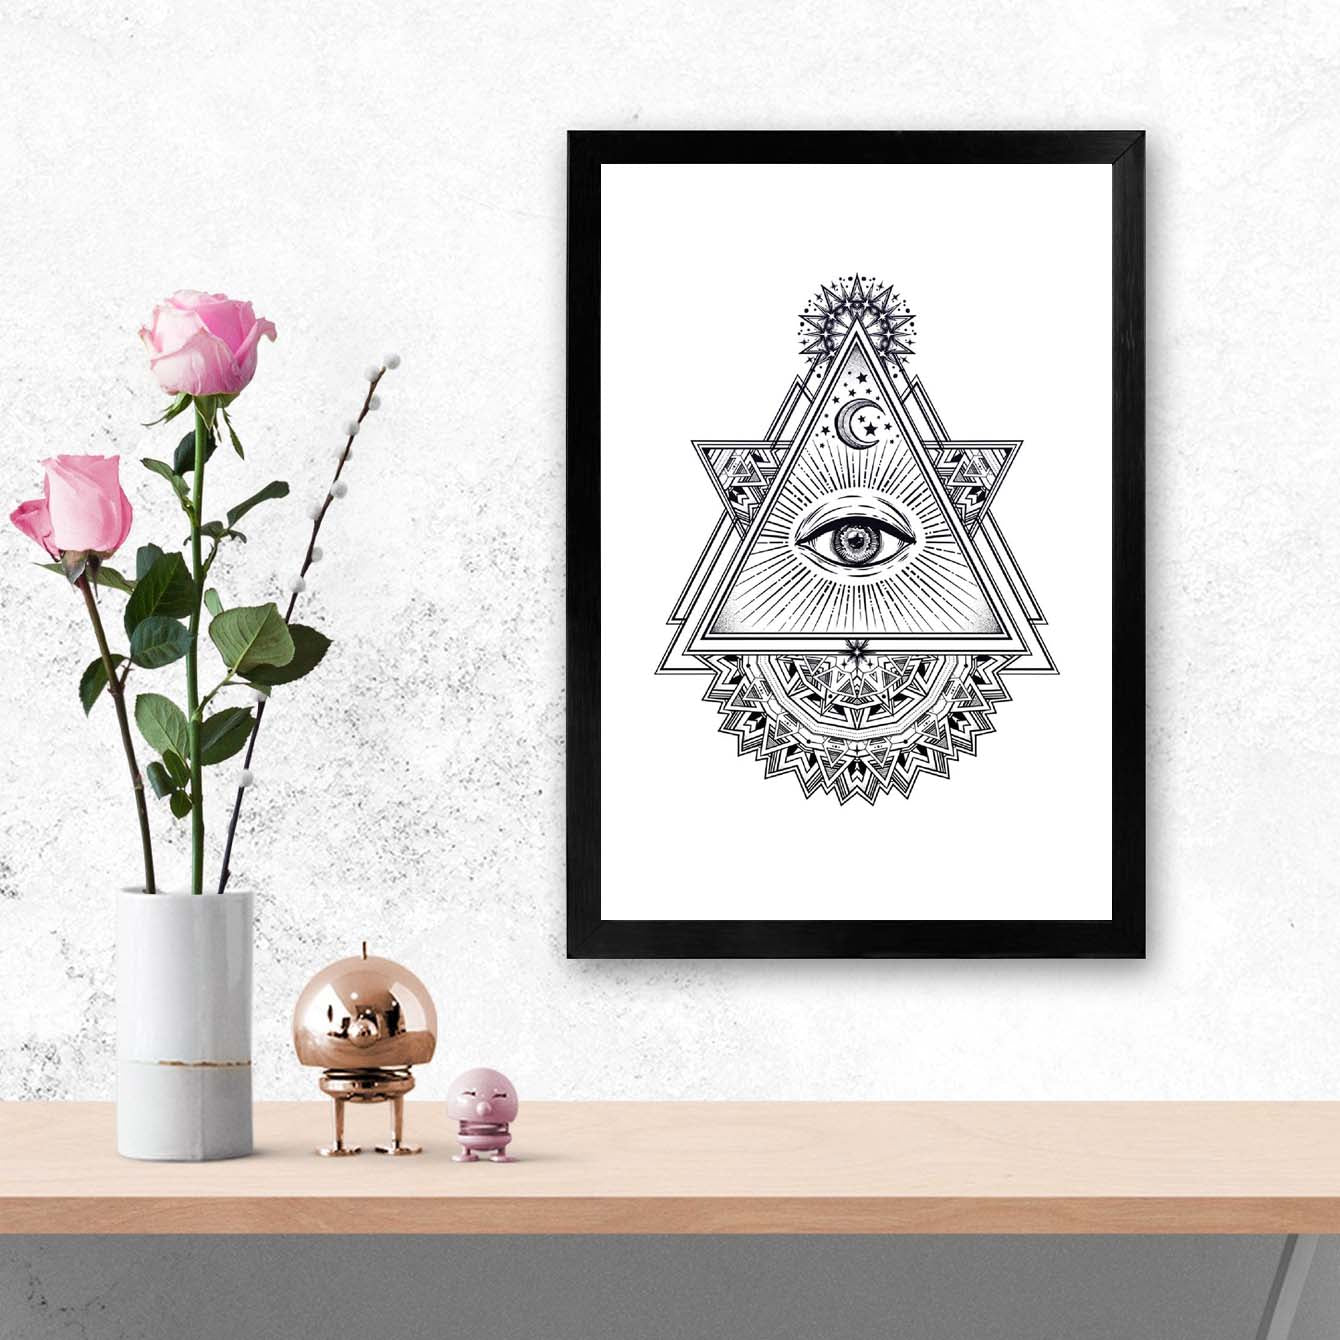 Secret Society Framed Poster